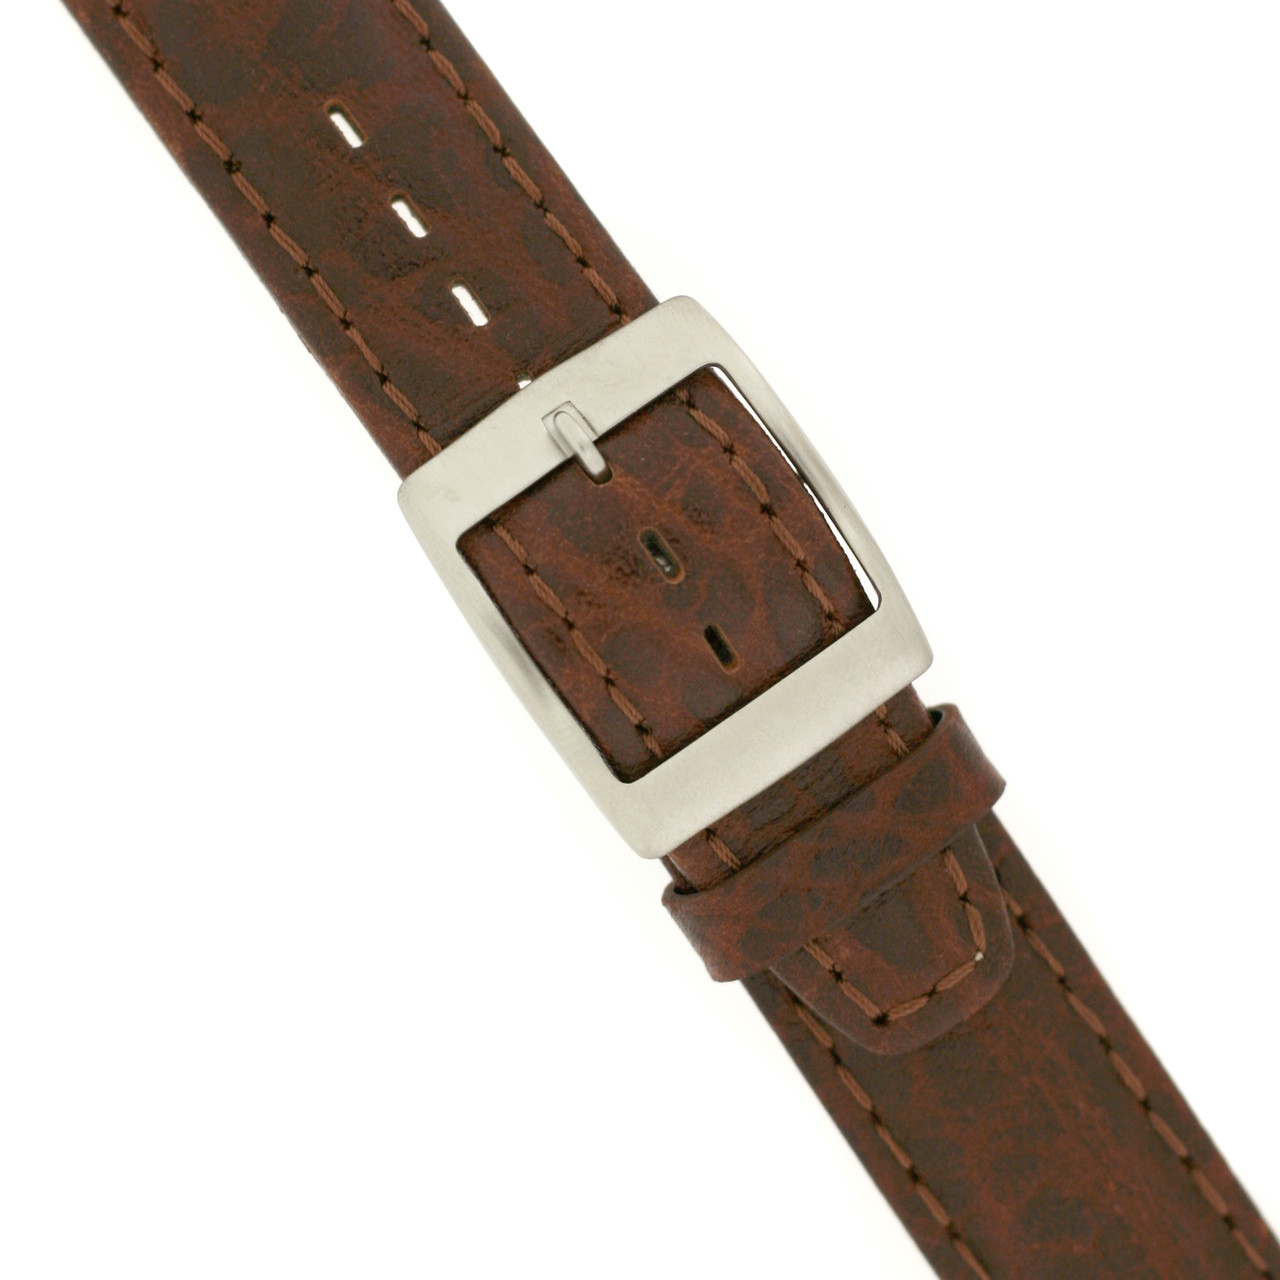 19mm Watch Band in Brown - Buckle View - Main